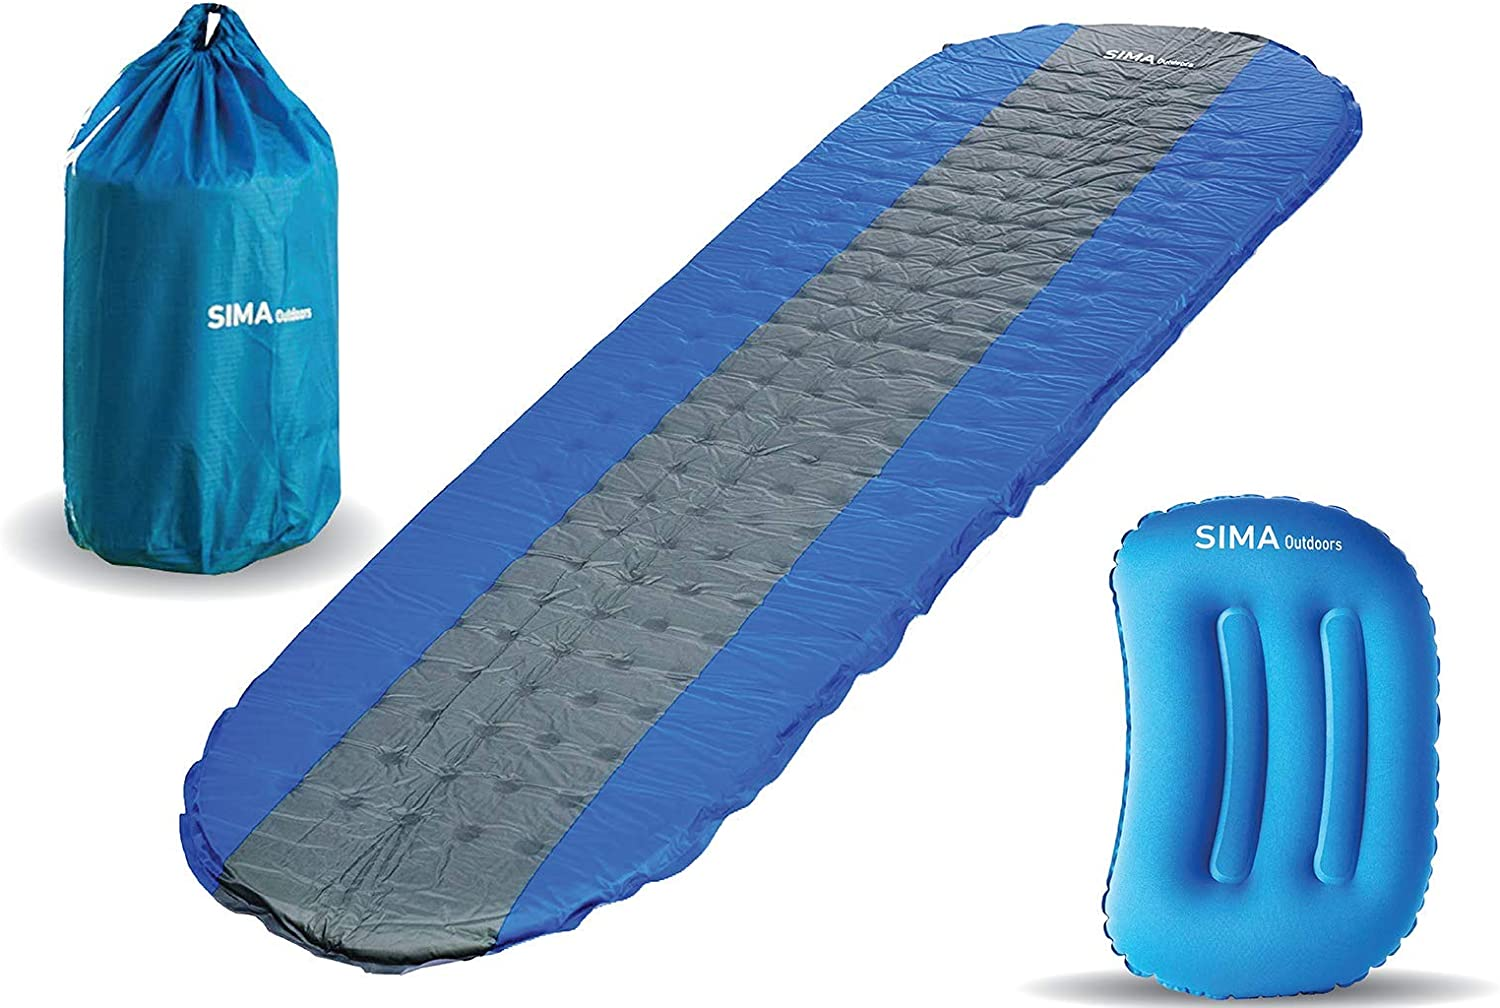 Rapid rise SIMA Outdoors Courier shipping free Sleeping Pad - #1 Inflating The Self